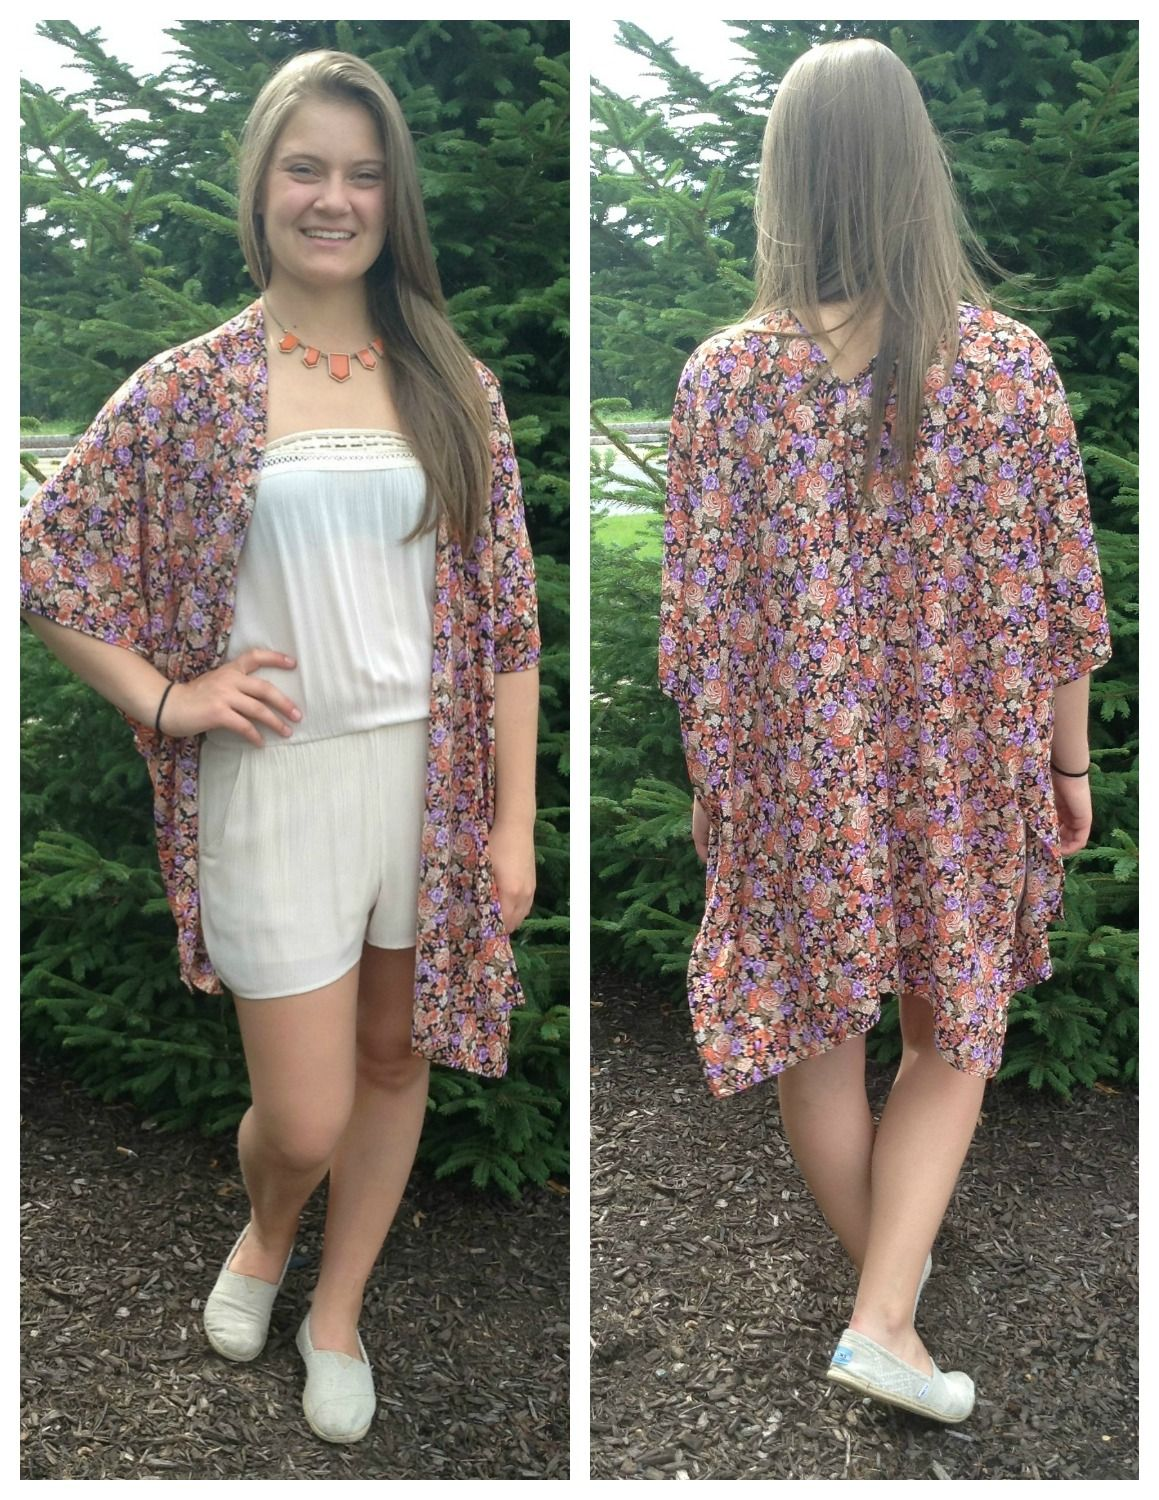 Floral kimono. Perfect for a day at the beach or walk through the park in the fall!